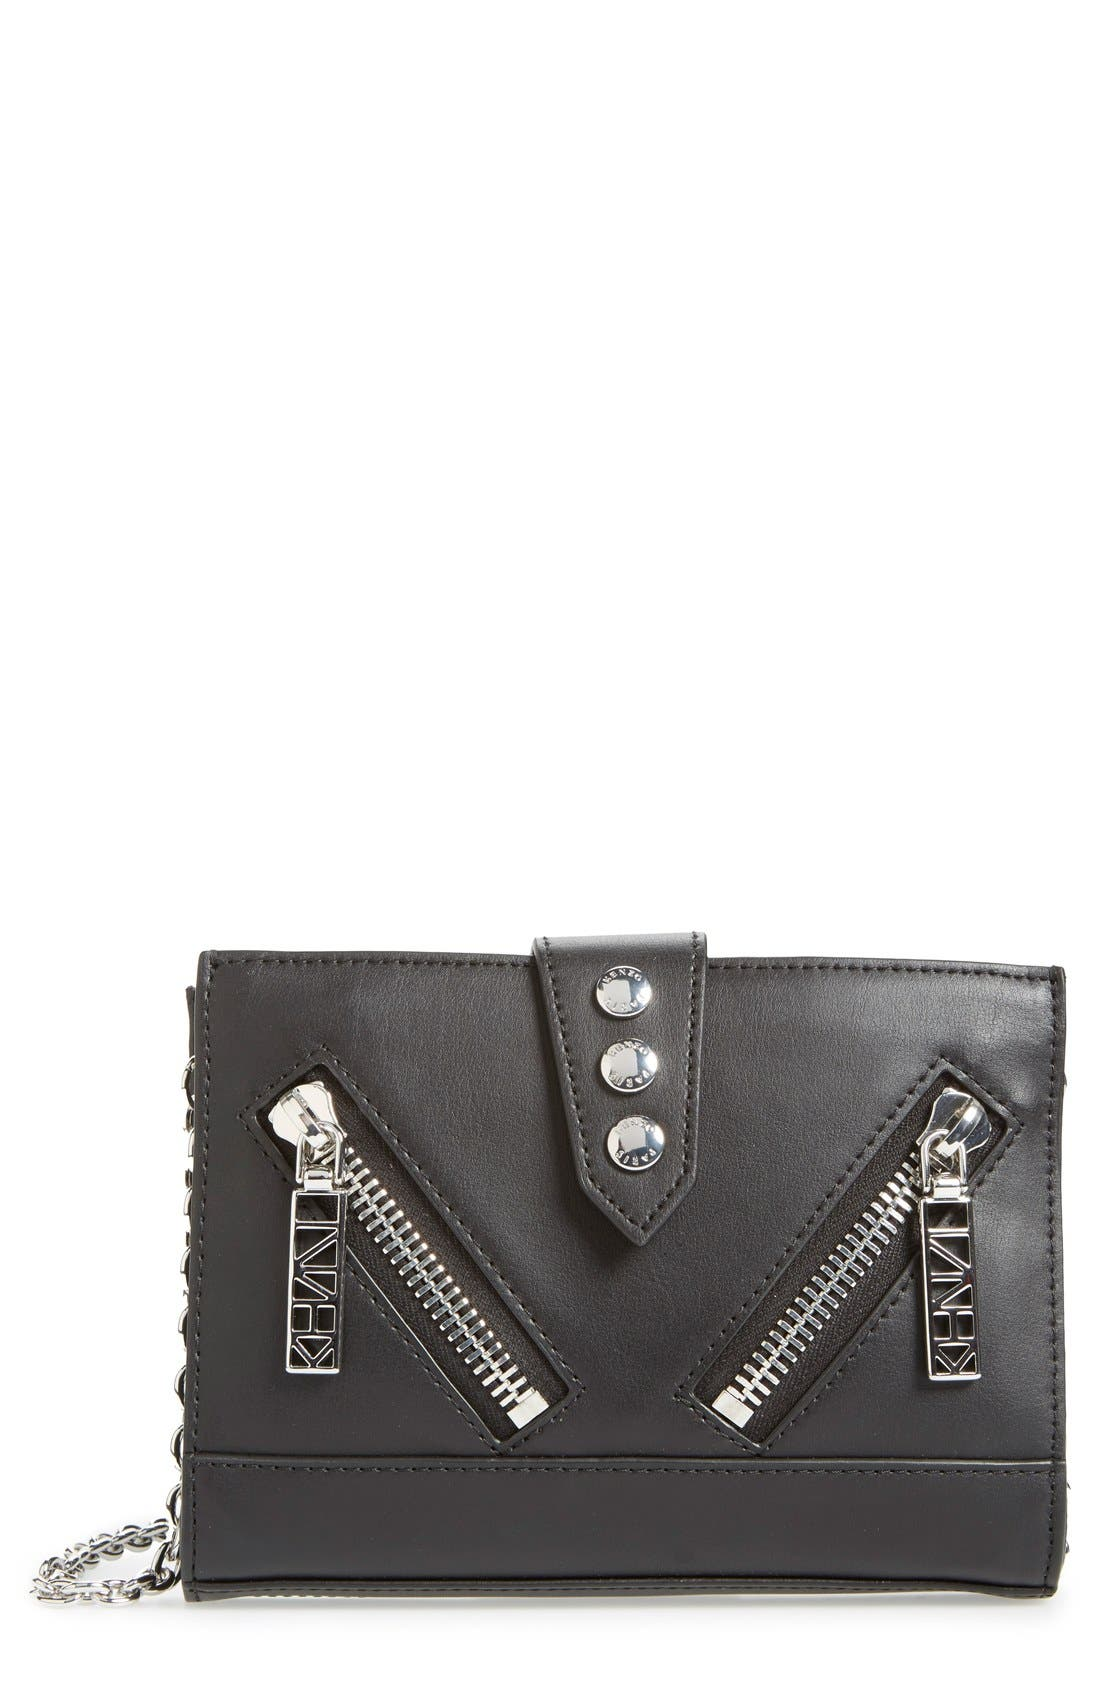 Main Image - KENZO 'Kalifornia' Wallet on a Chain. '